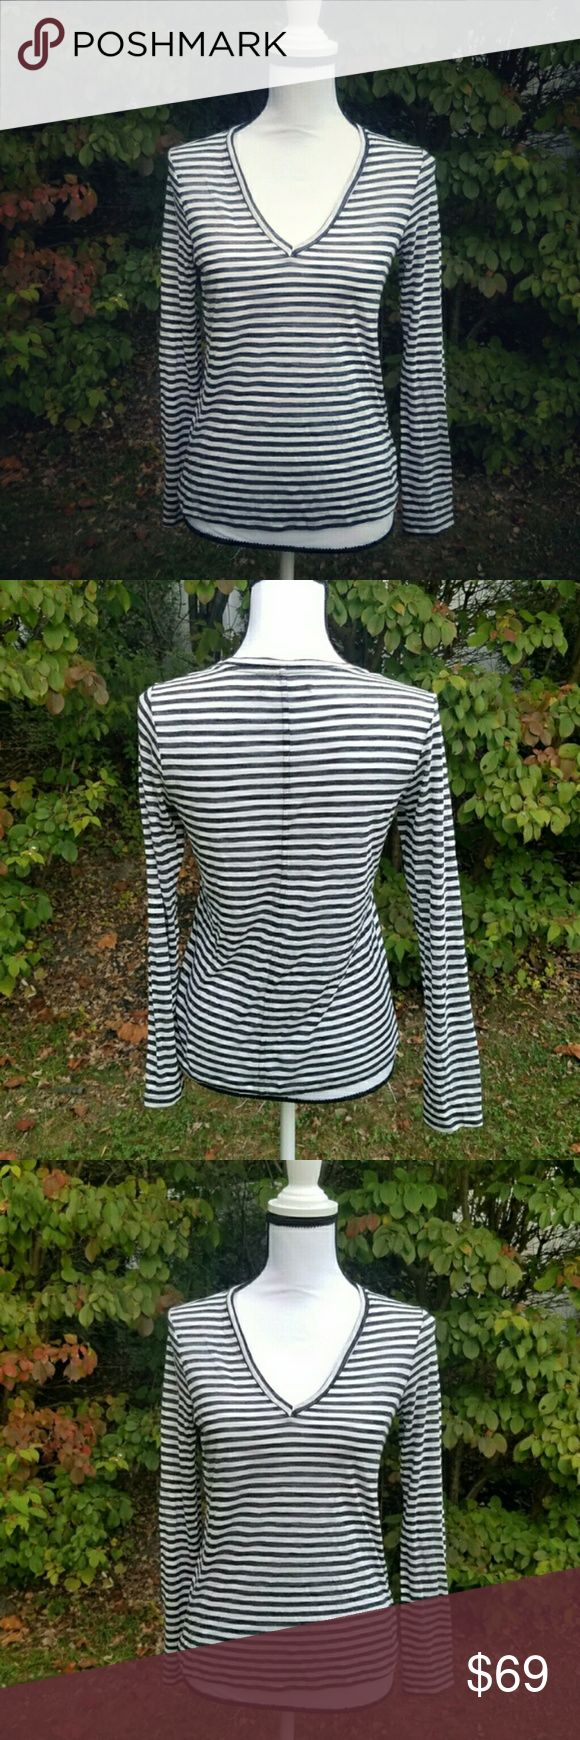 🎄HOLIDAY SALE🎄 J BRAND STRIPED TEE SIZE SMALL J BRAND STRIPED TEE SIZE SMALL worn once maybe twice the color is heather navy/black and heather white/gray in great condition J Brand Tops Tees - Long Sleeve